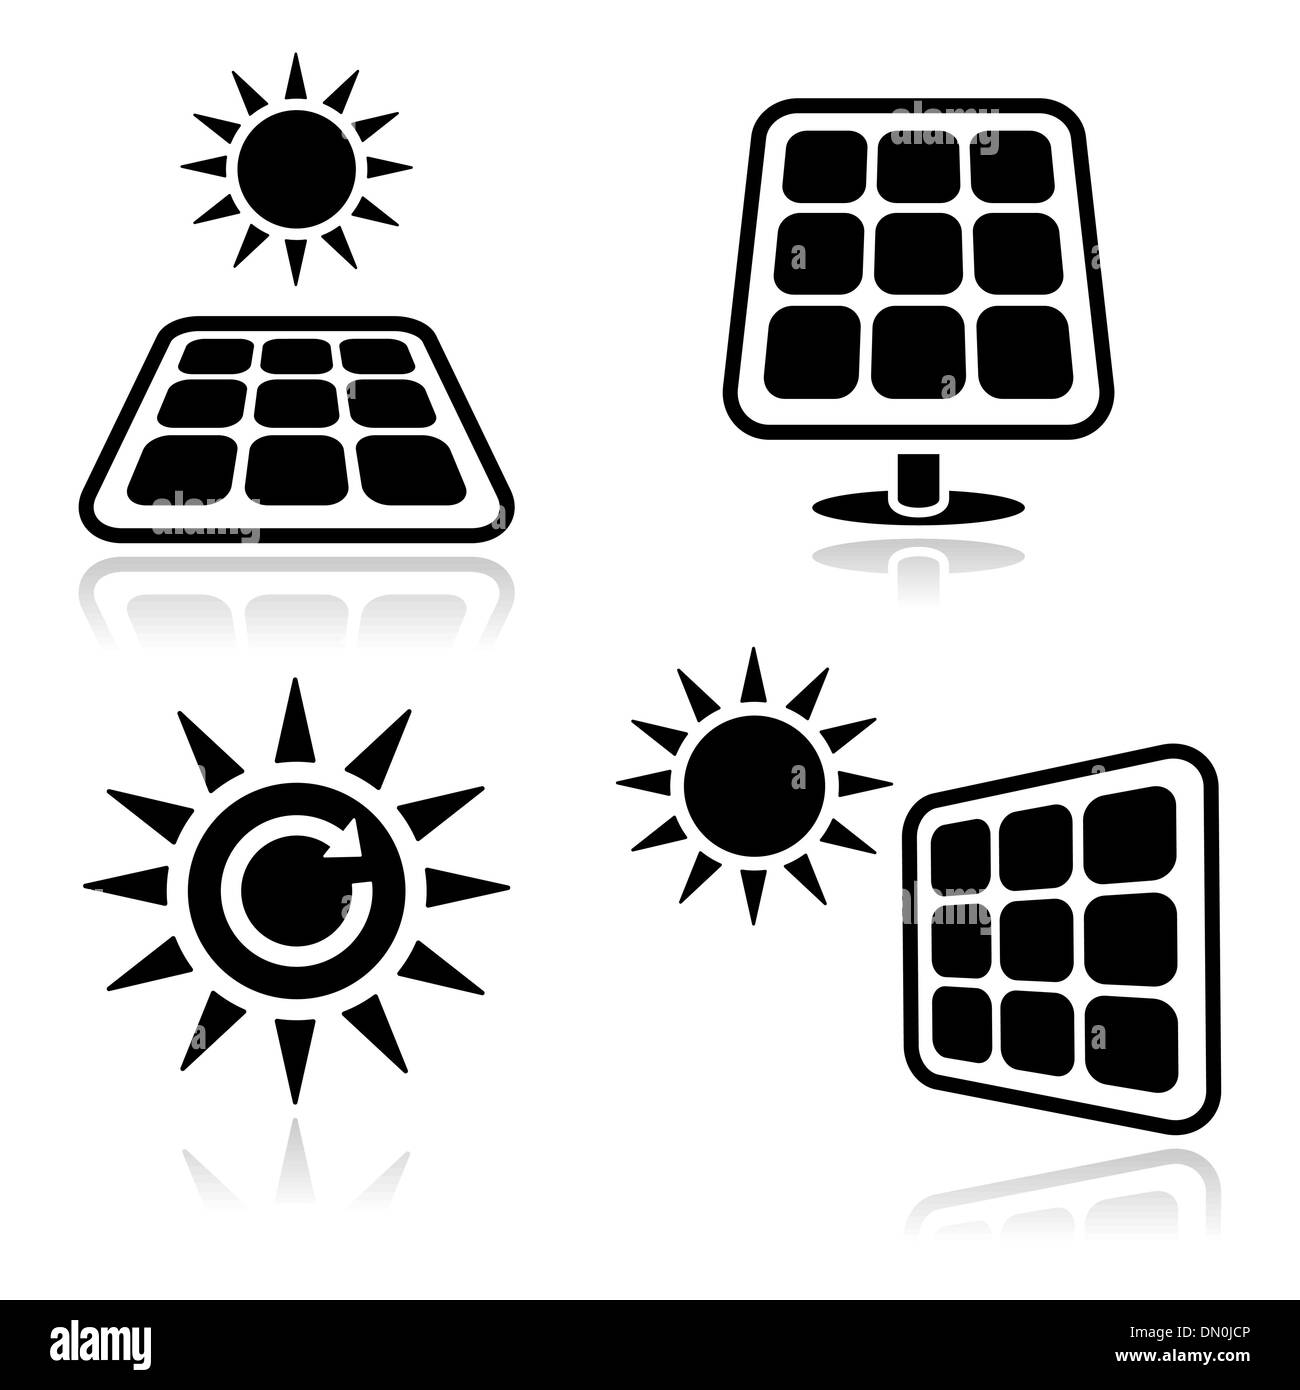 Solar panels clean black icons set - Stock Image